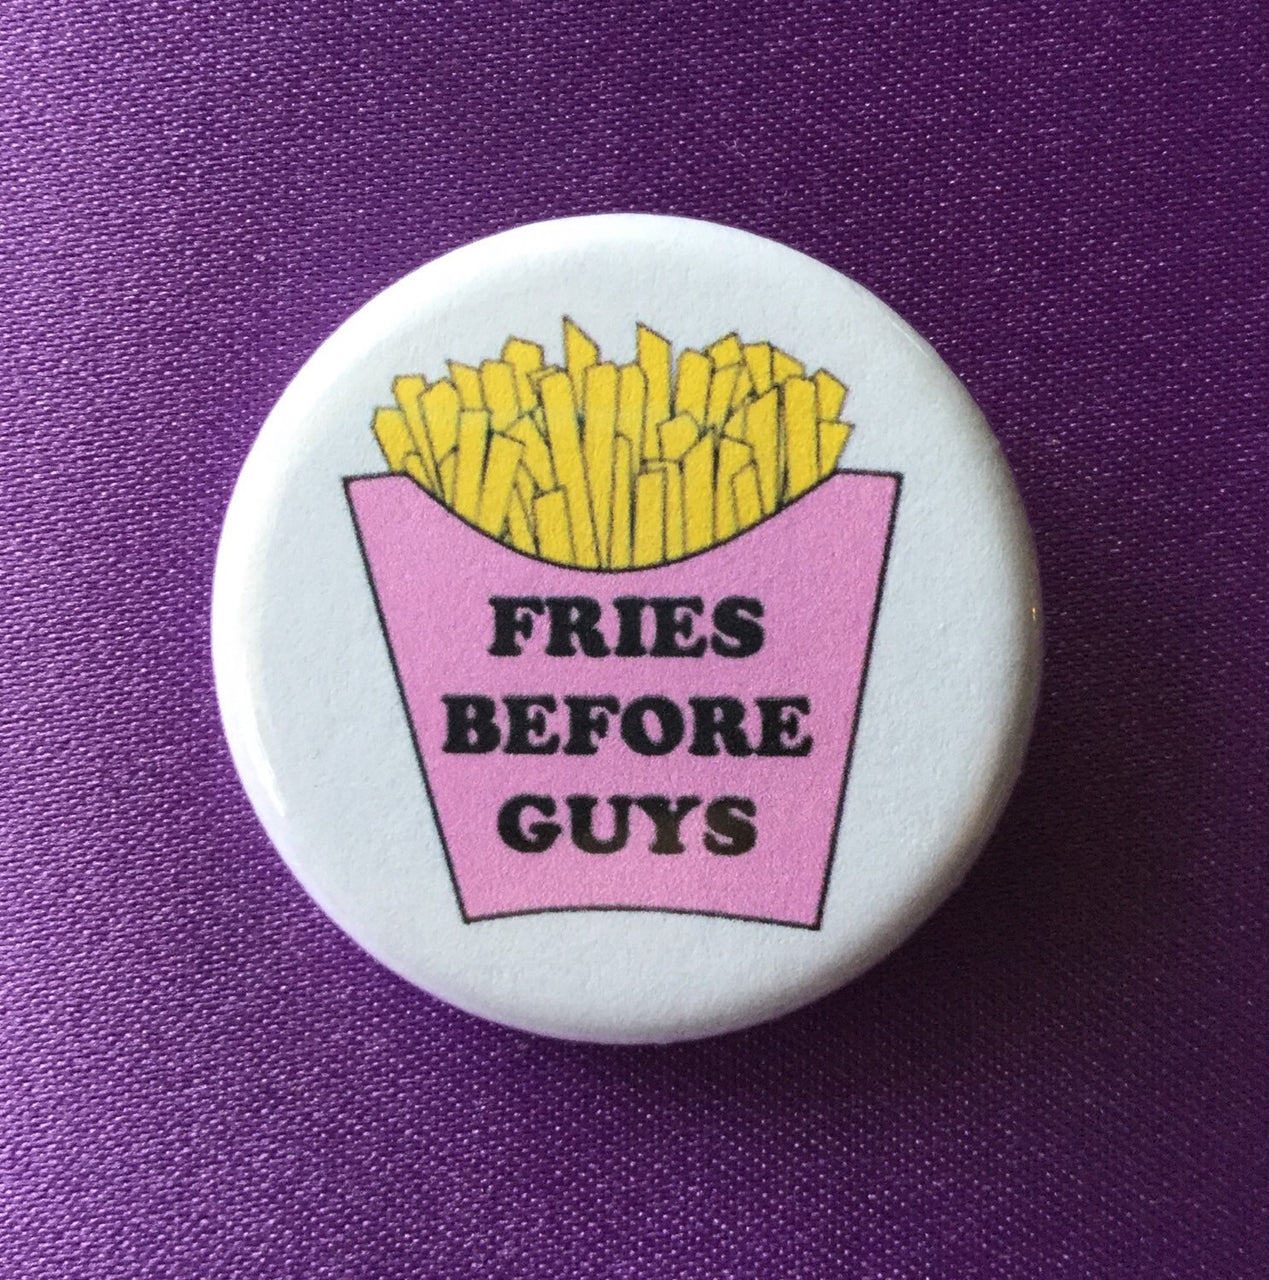 Fries before guys button - Radical Buttons